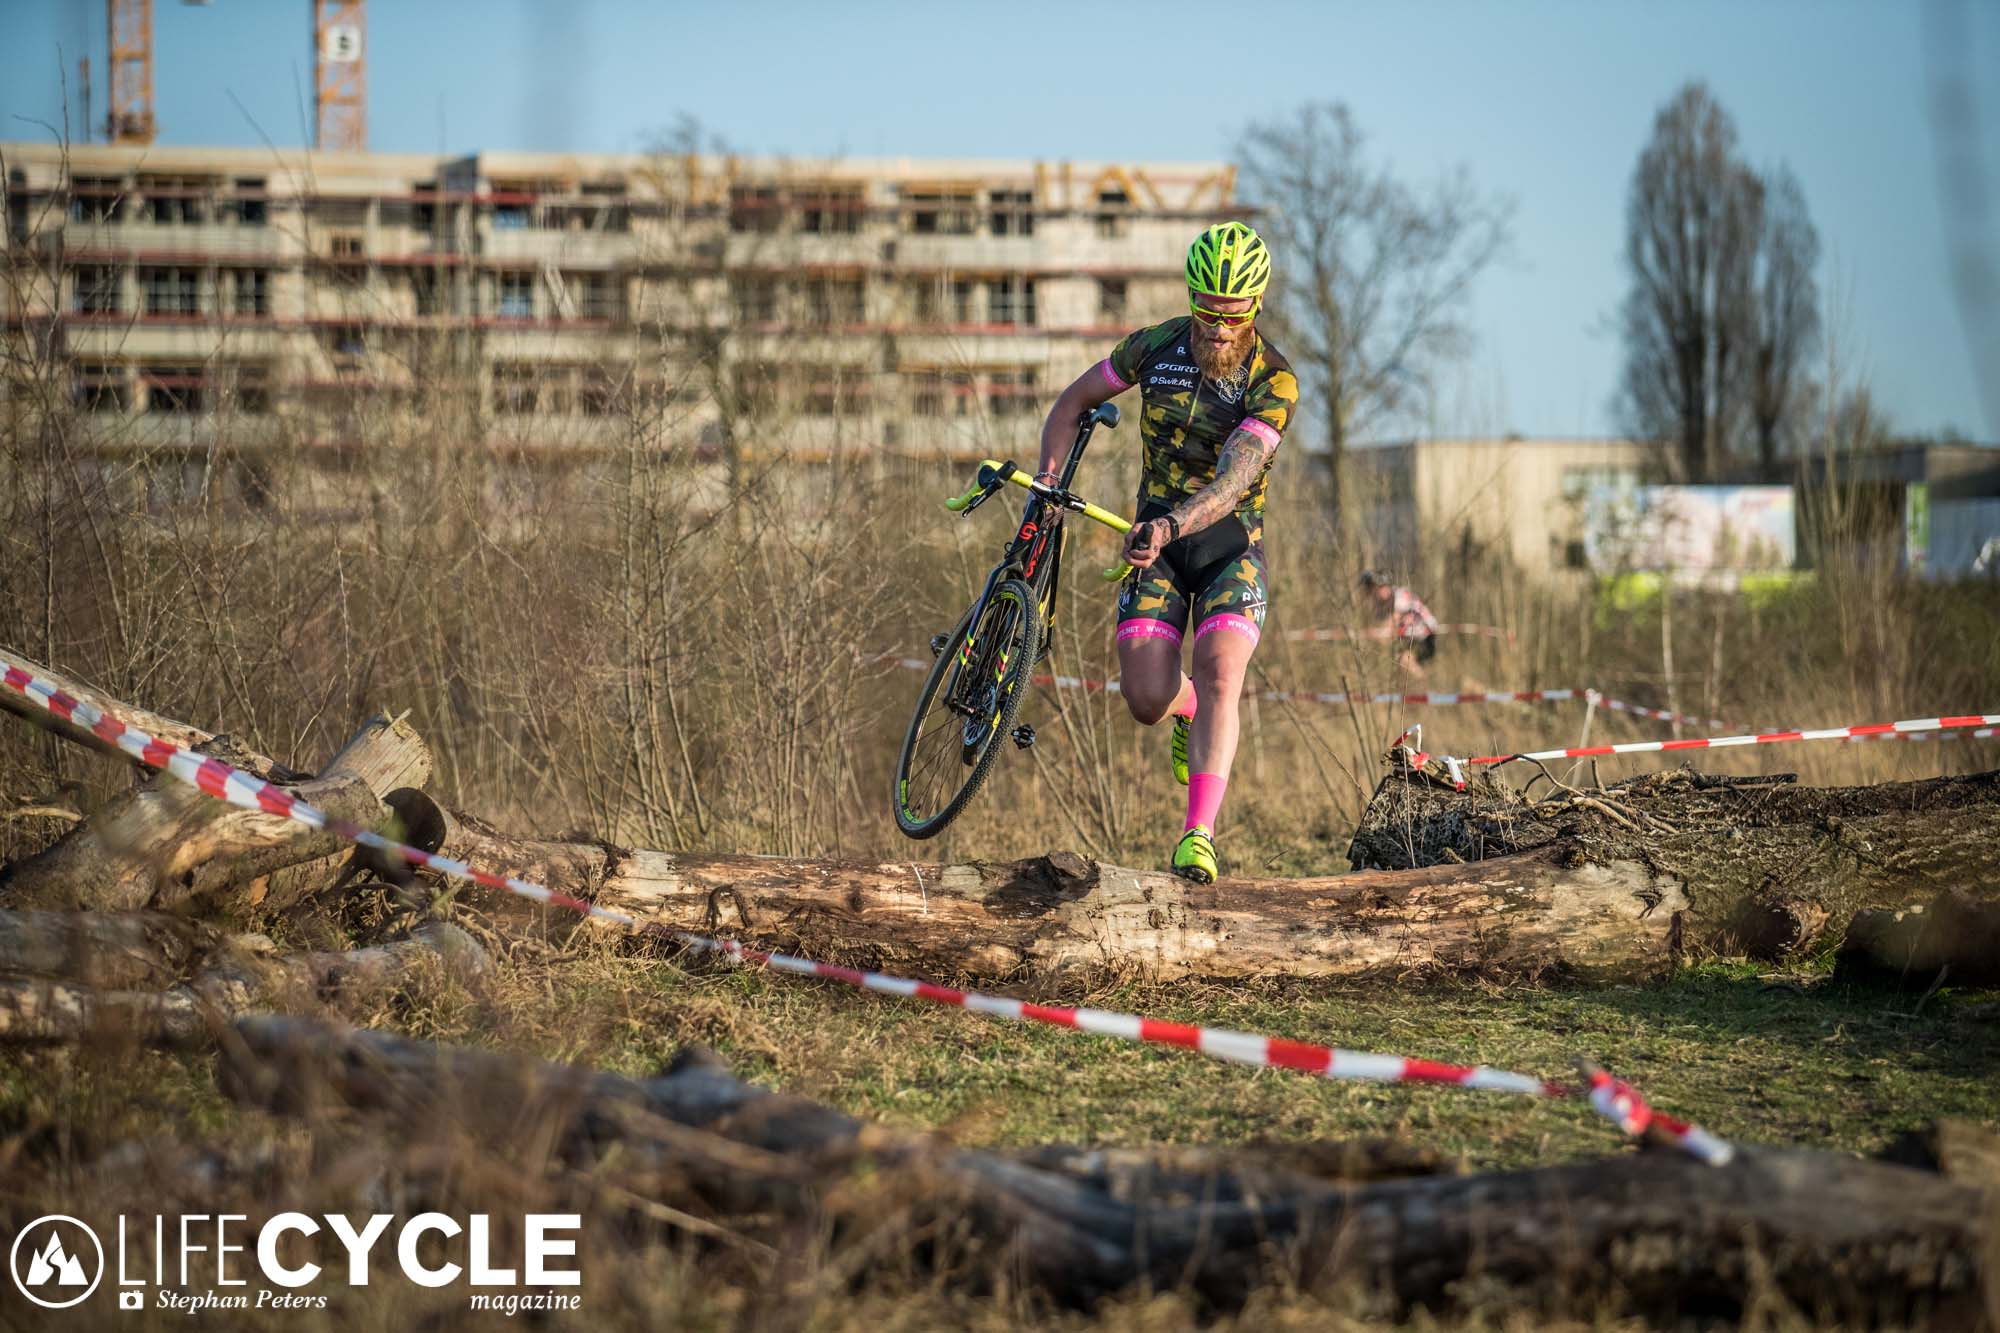 Biehler Cyclocross Cyclingworld Crossrennen Düsseldorf